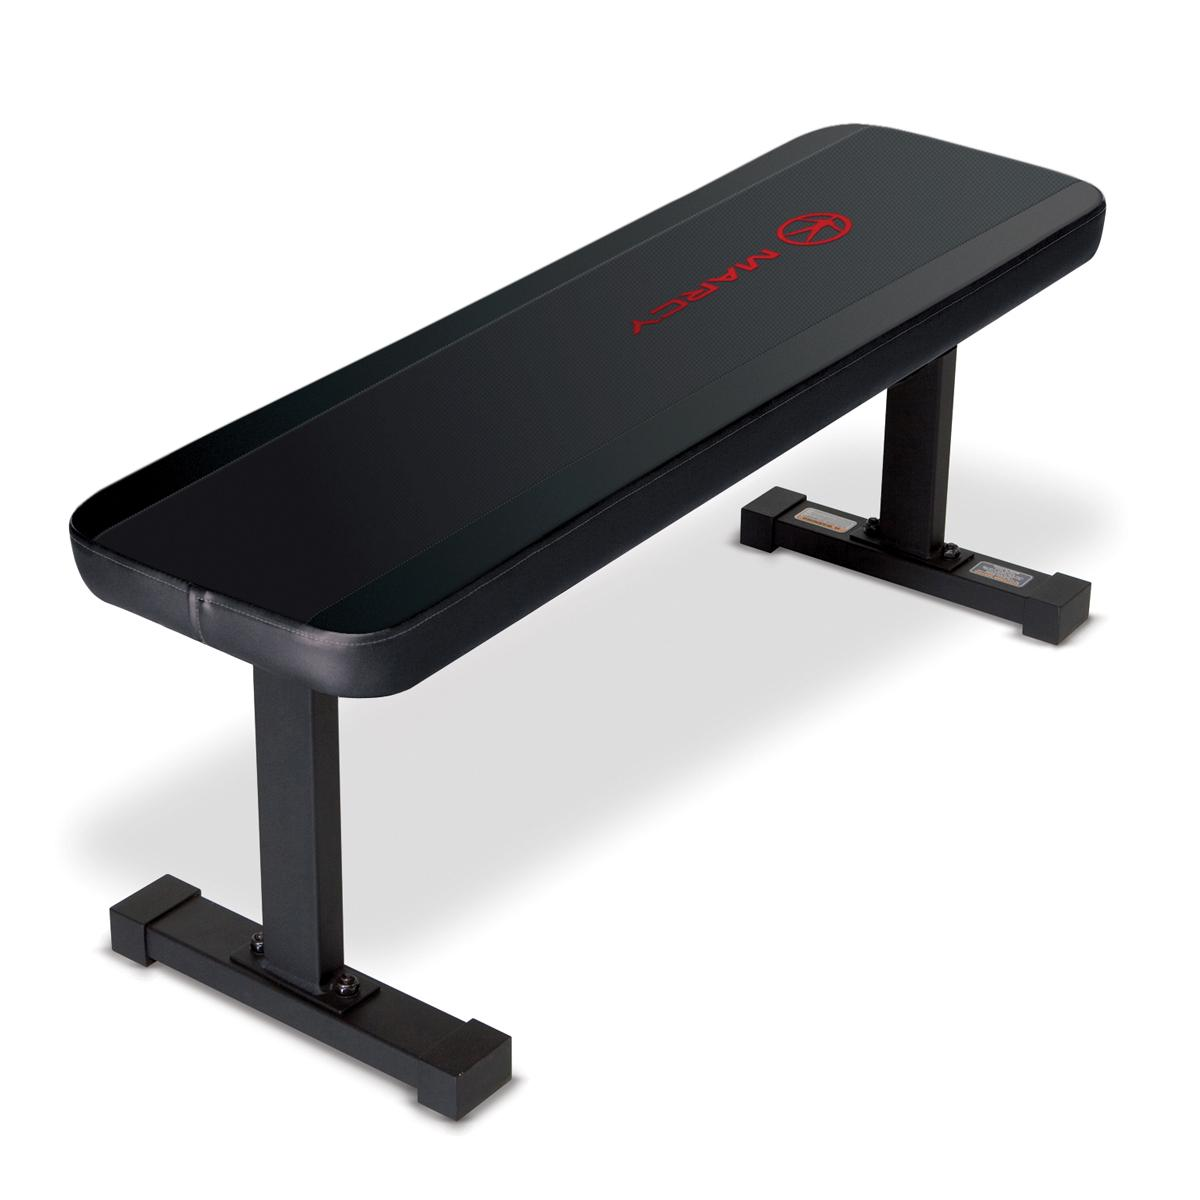 Marcy Flat Utility Weight Bench For Weight Training And Abs Exercises Sb 315 Sports